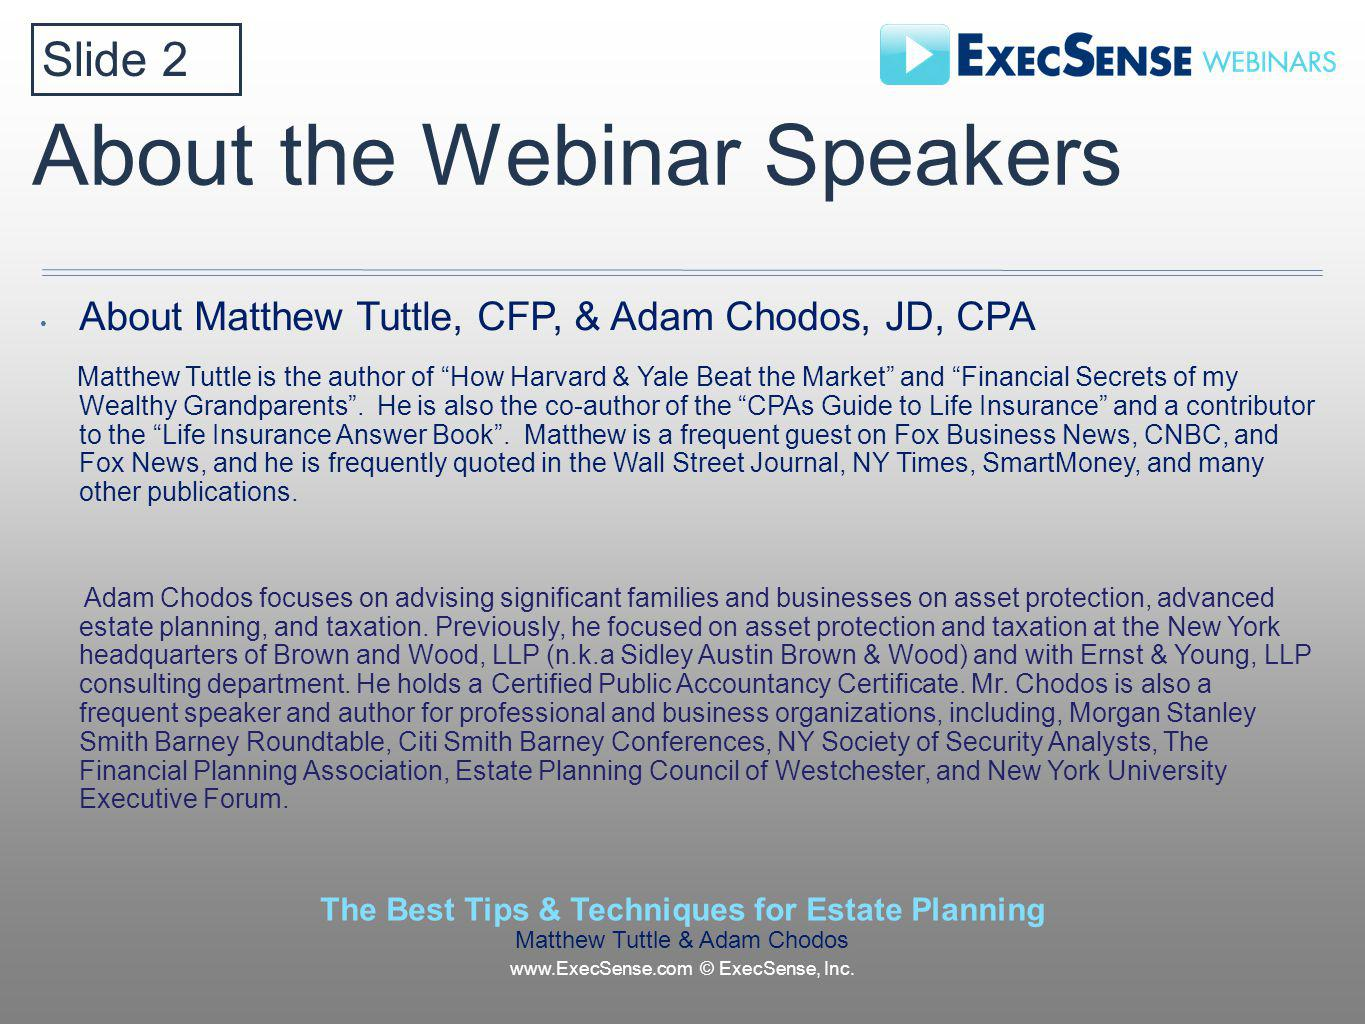 About the Webinar Speakers The Best Tips & Techniques for Estate Planning Matthew Tuttle & Adam Chodos www.ExecSense.com © ExecSense, Inc.